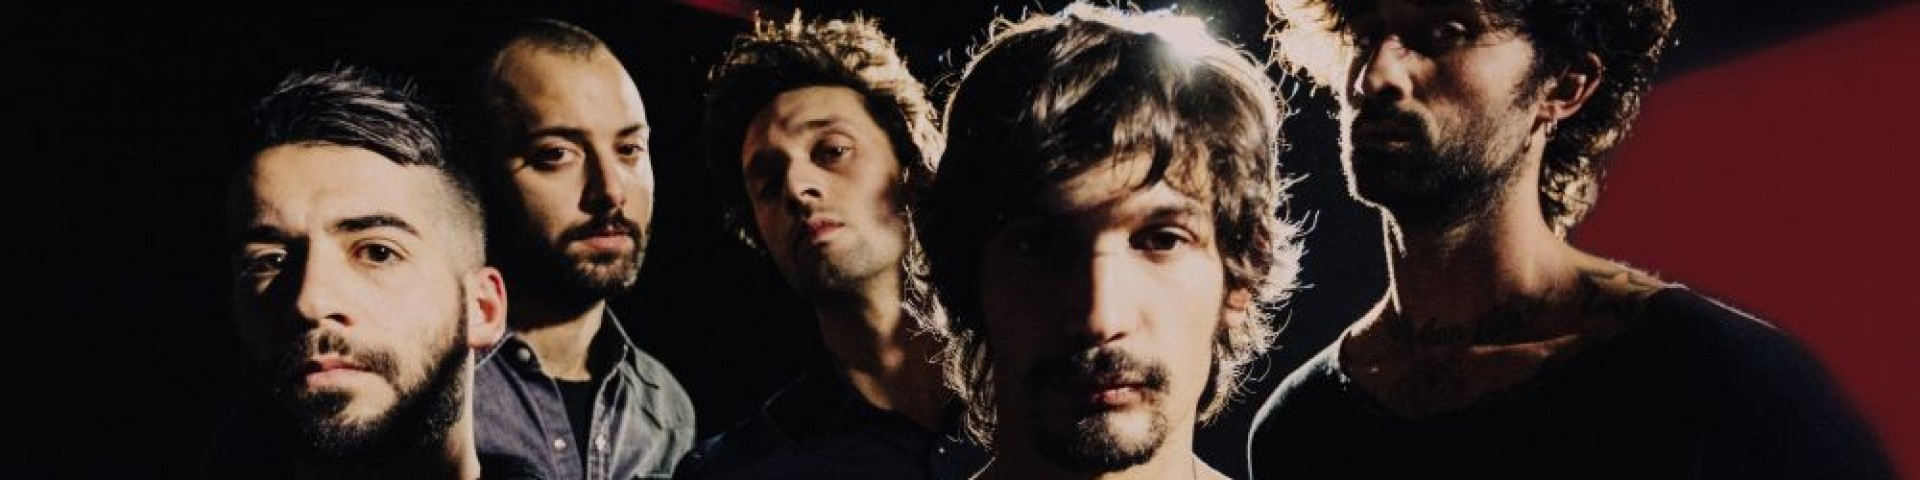 "Pierdavide Carone & Dear Jack: ""Un album insieme in futuro? Chissà..."" - Video"